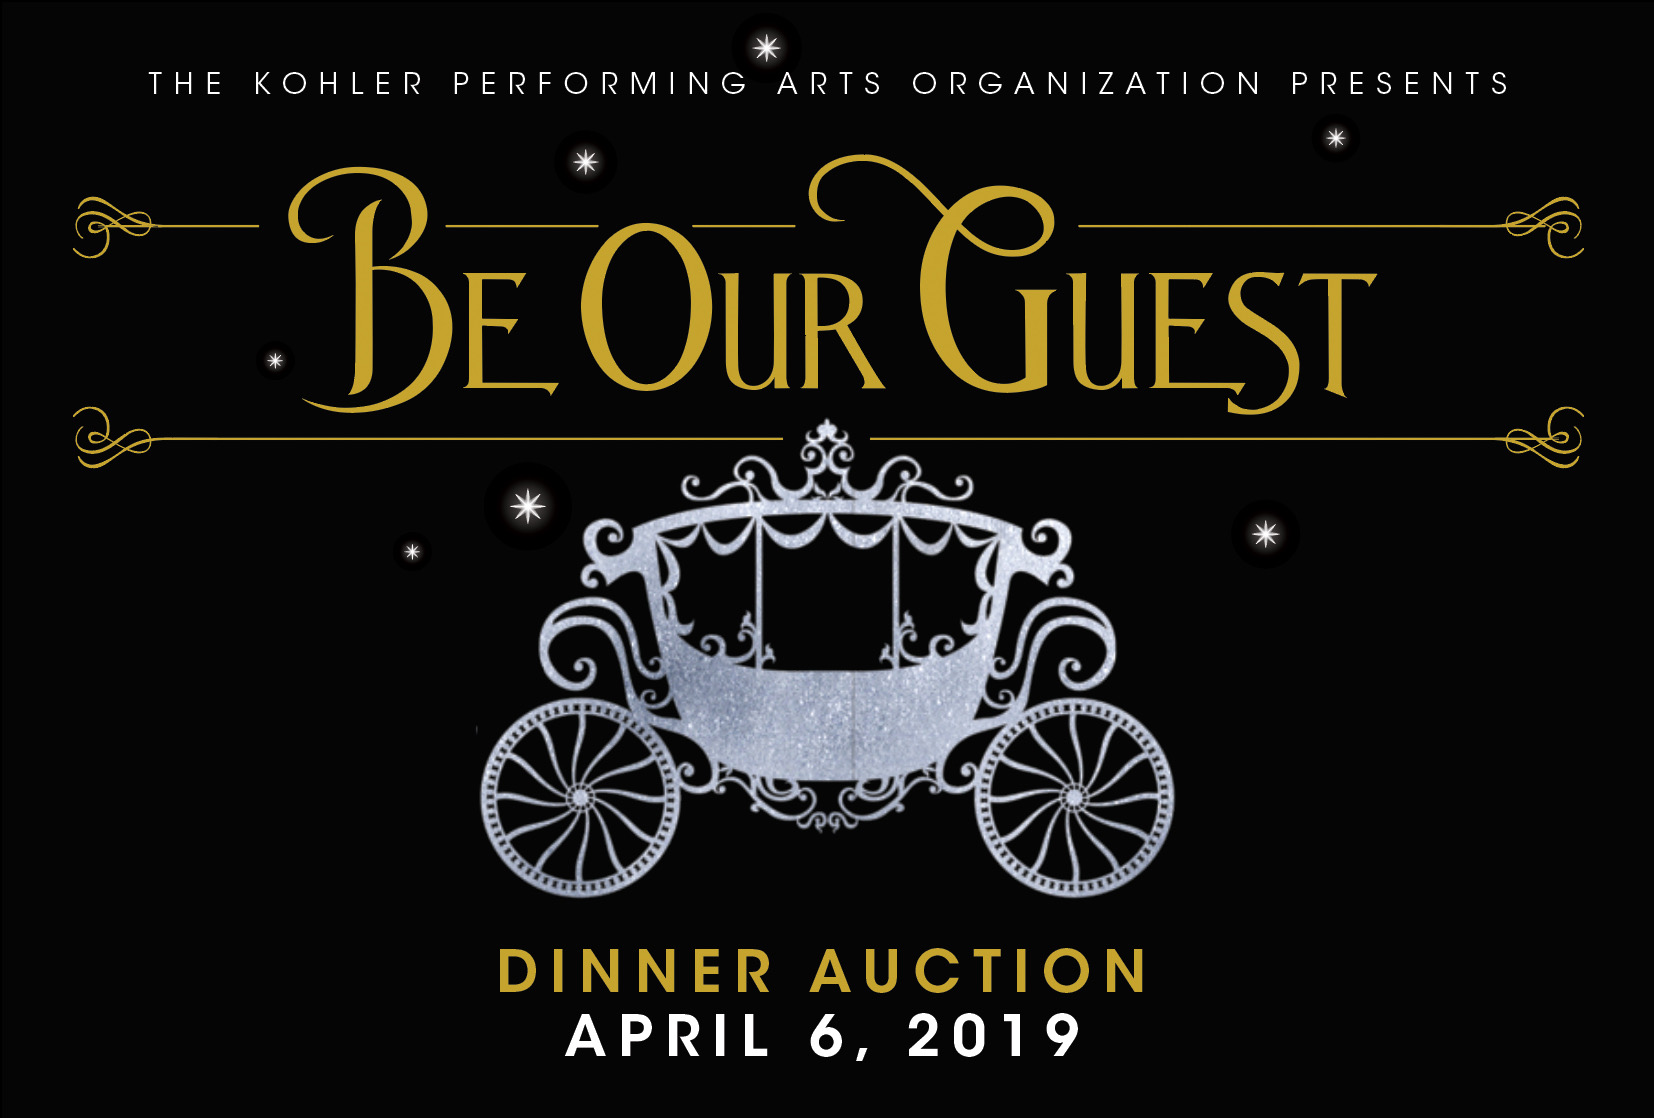 Be Our Guest Dinner Auction